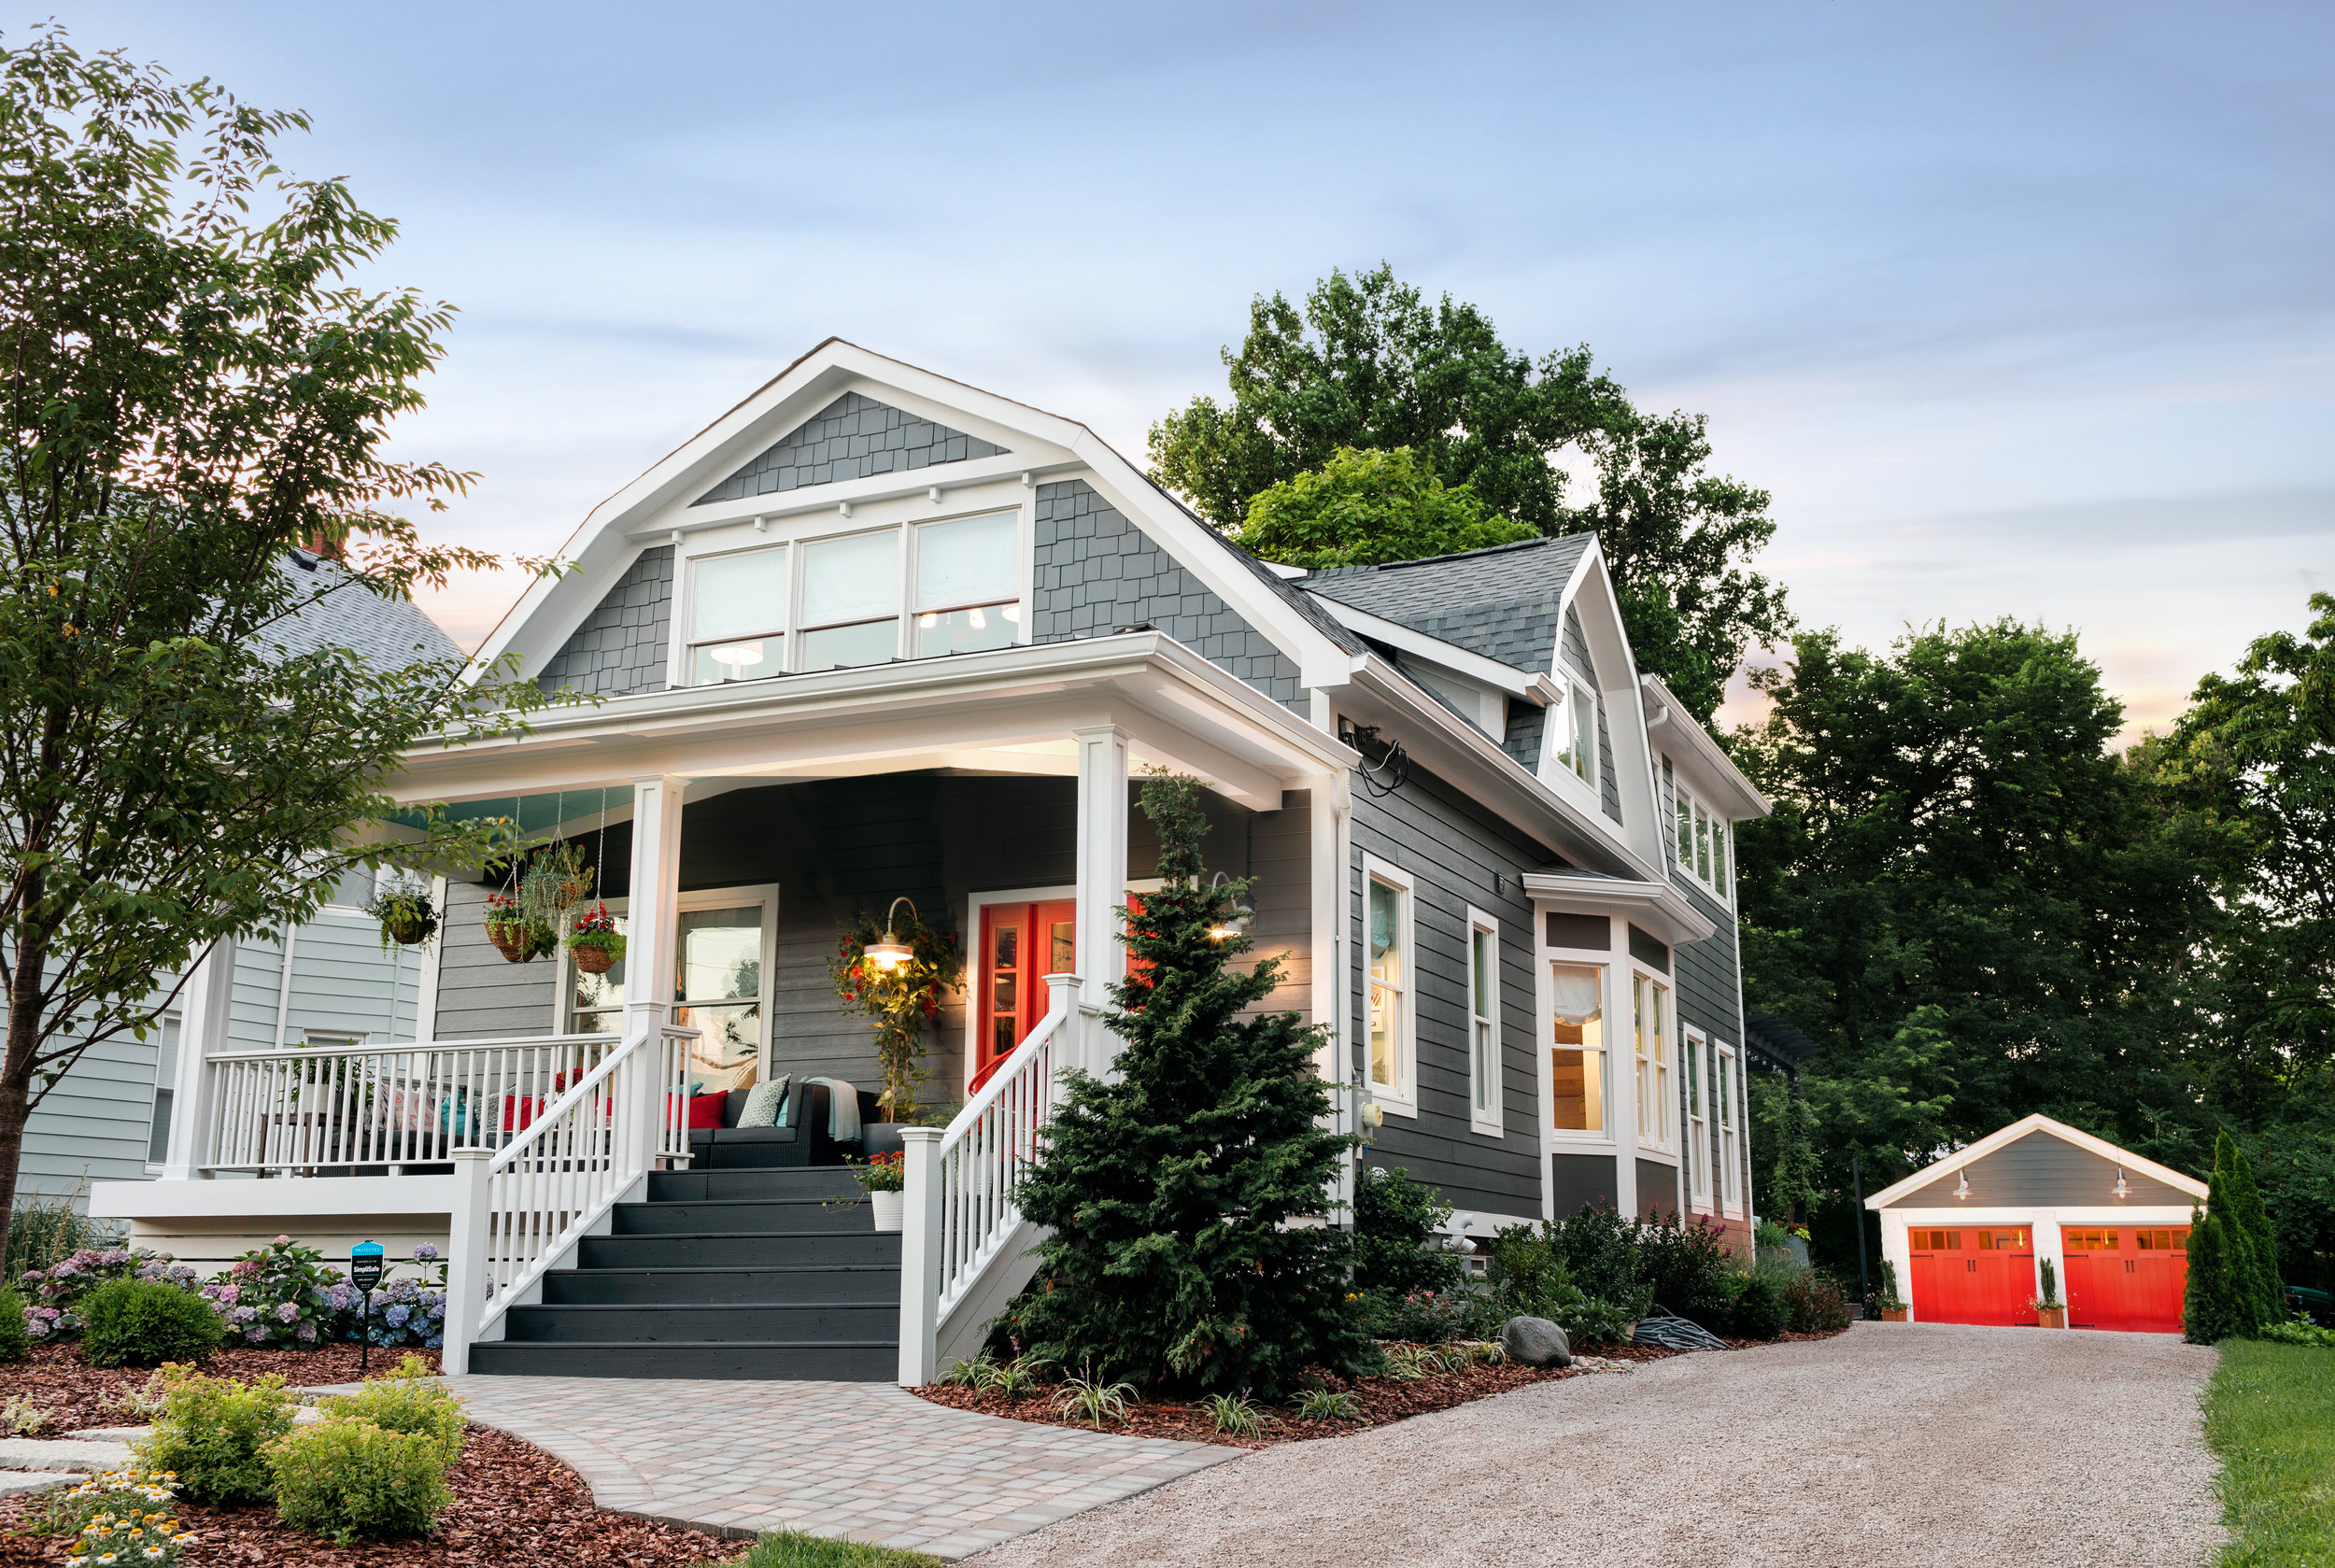 uo2018_front-yard-28-wide-angle-dusk-KB2A0506_h.jpg